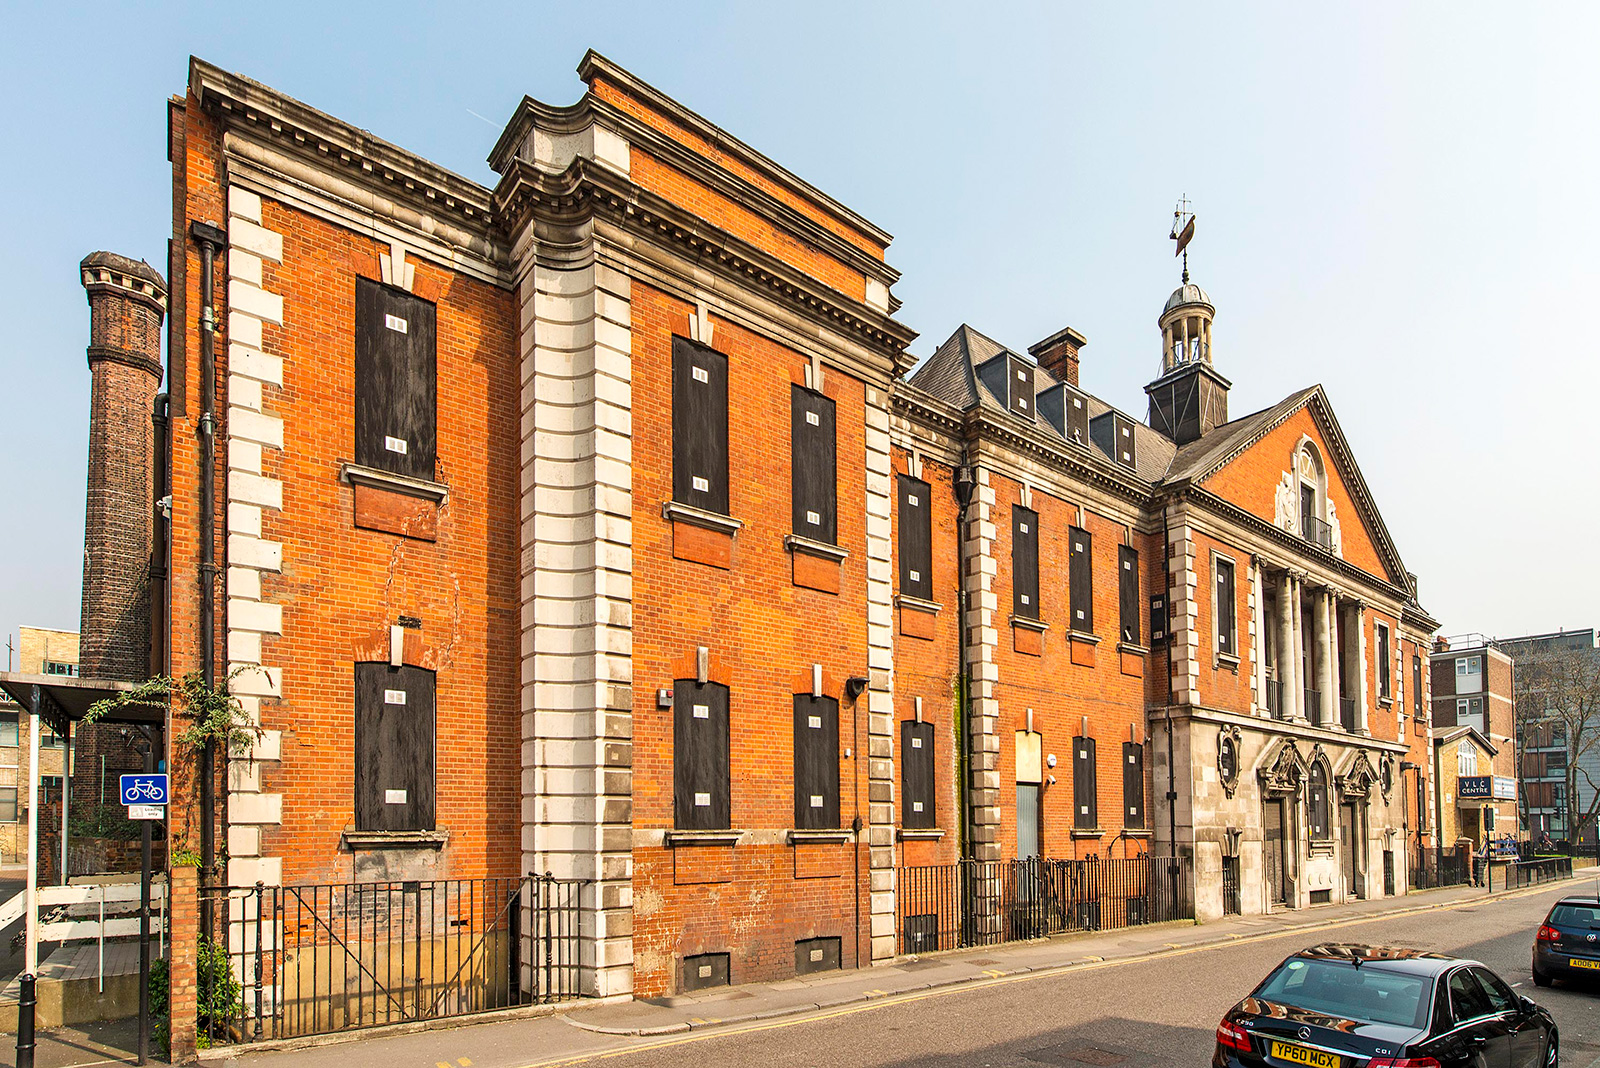 Cash Pool Halle London 39s Haggerston Baths To Be Turned Into A Multi Use